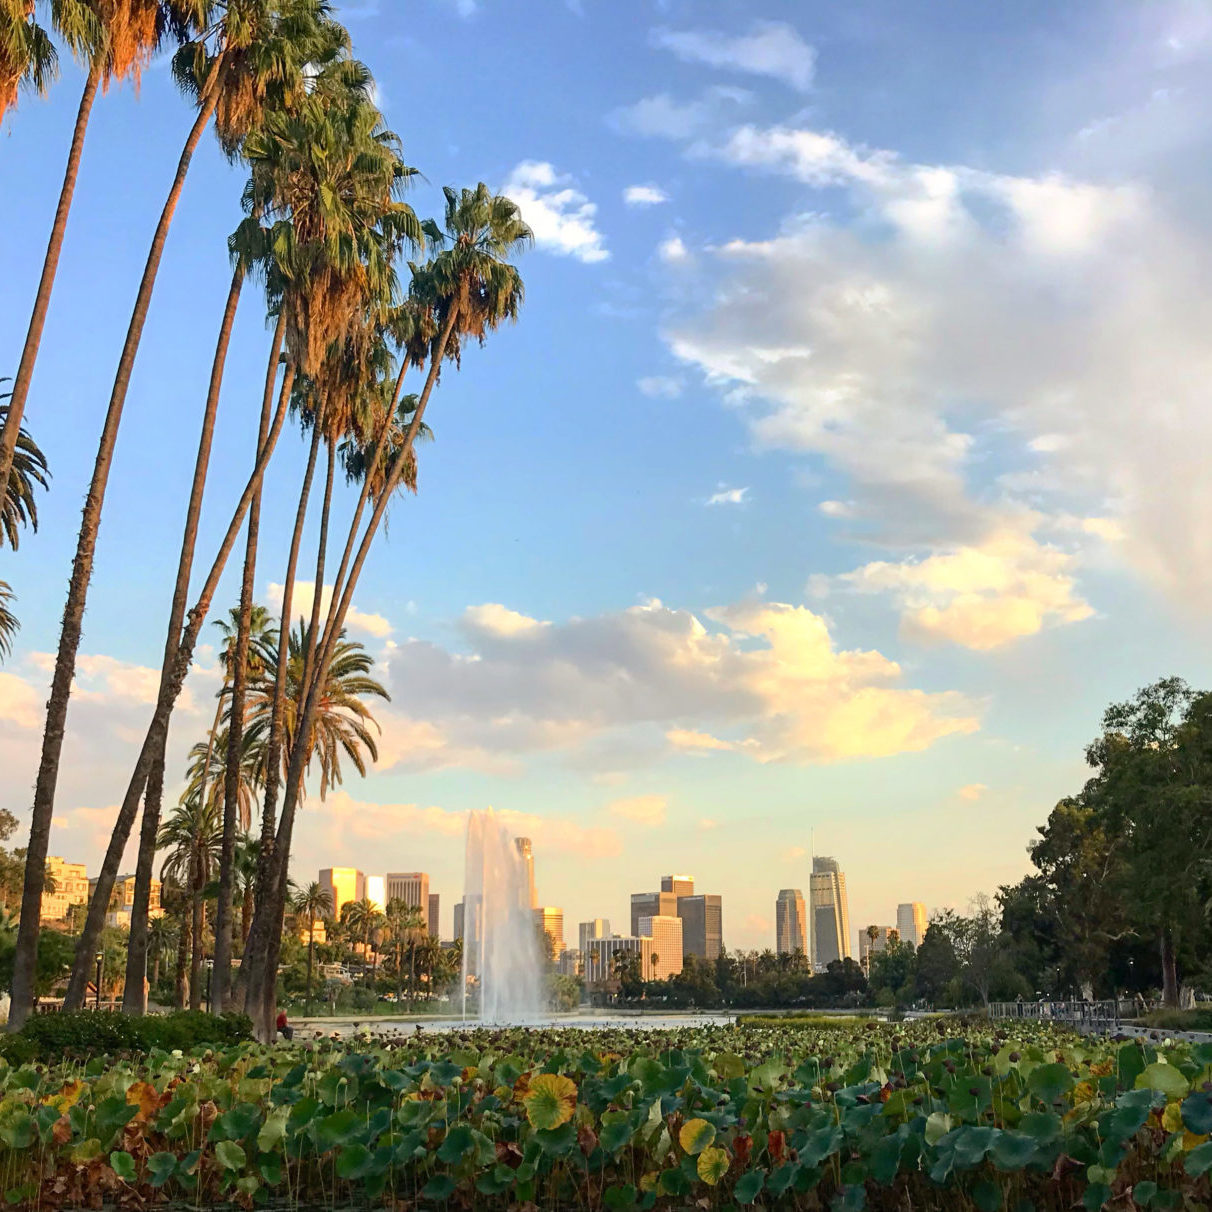 Echo Park Lake With Lotus Flowers And Los Angeles Skyline In The Background